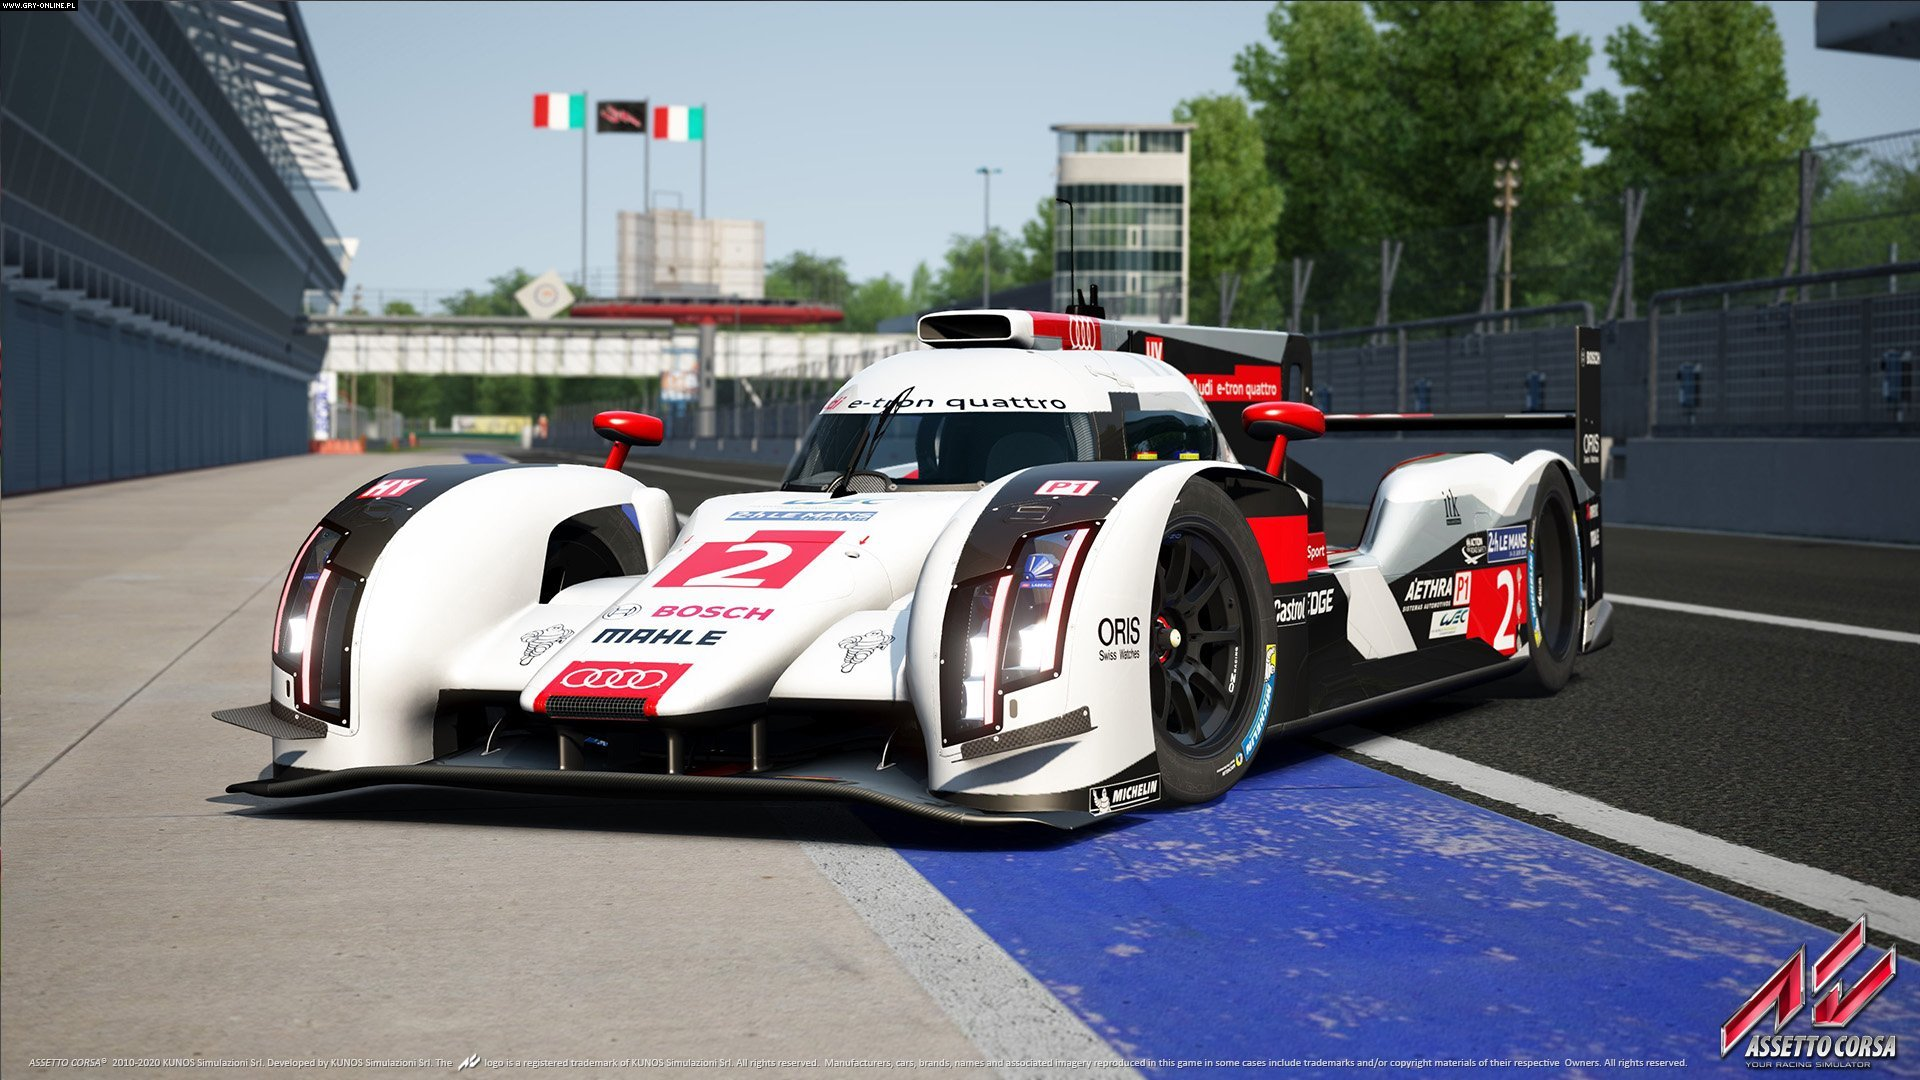 Assetto Corsa PC, PS4, XONE Games Image 13/309, Kunos Simulazioni